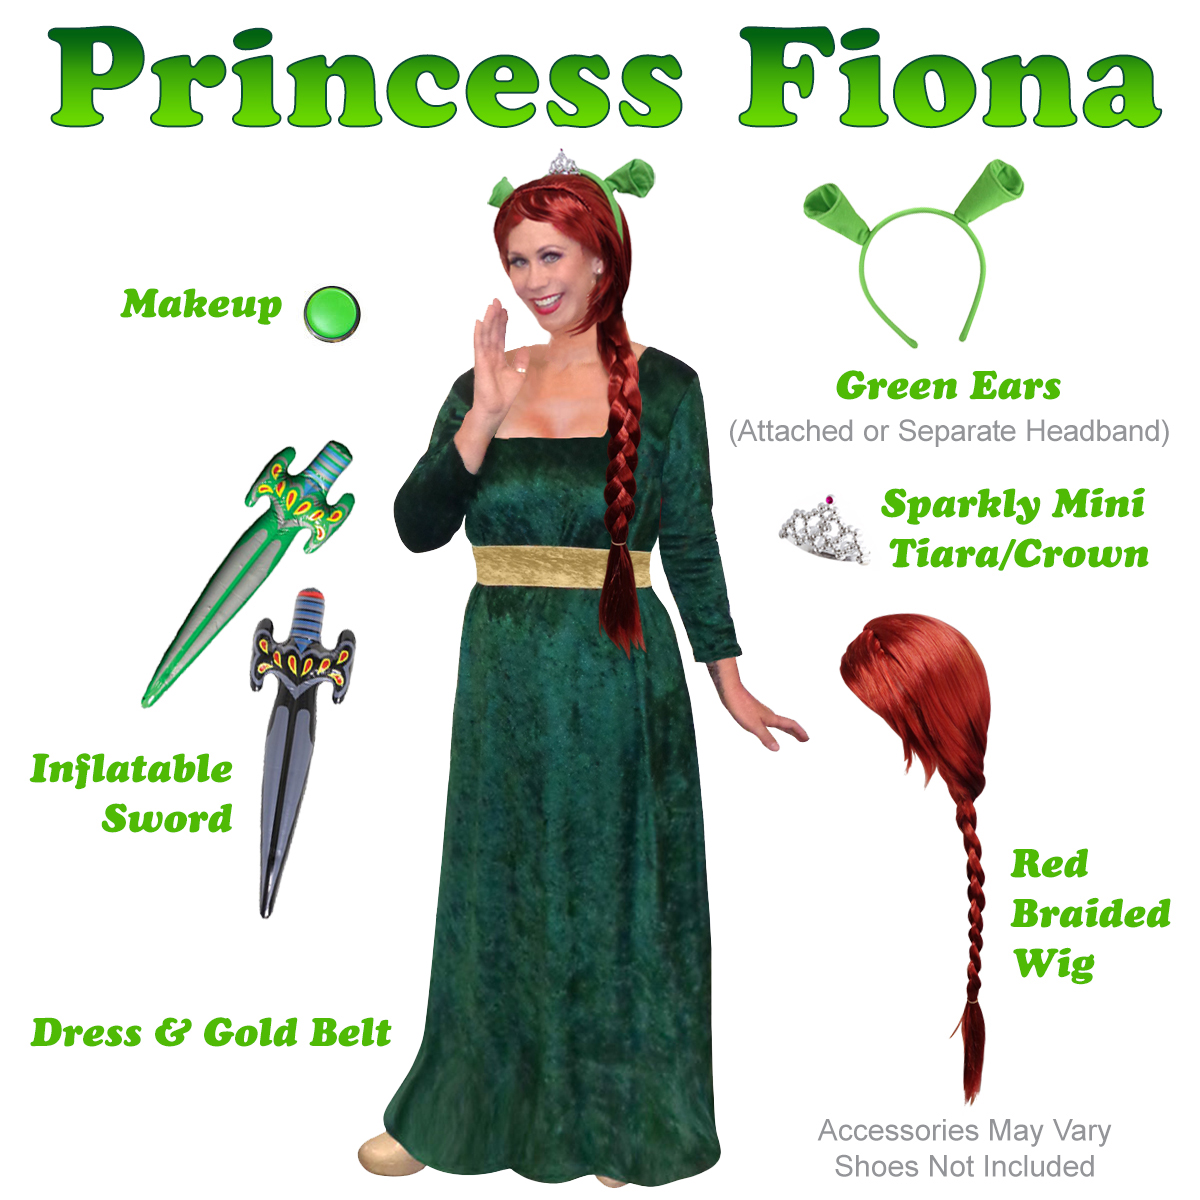 Plus Size Princess Fiona Costume from Shrek! Plus Size And Supersize Halloween Costume + Add Accessories! Sizes S-XL u0026 Plus Size 1x 2x 3x 4x Supersize 5x 6x ...  sc 1 th 225 : shrek and fiona halloween costumes  - Germanpascual.Com